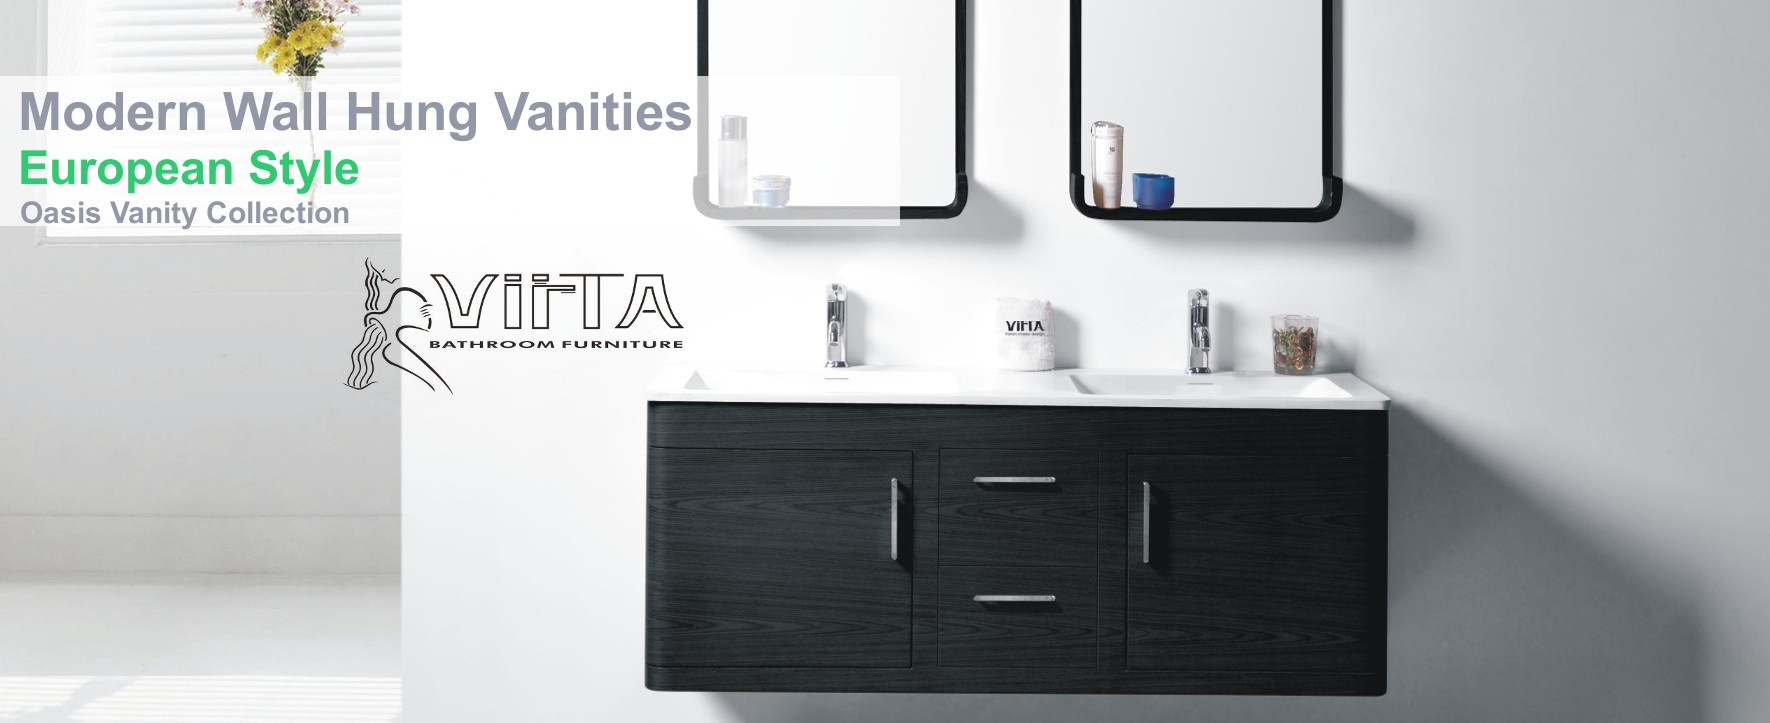 Modern Wall Hung Vanities by Virta